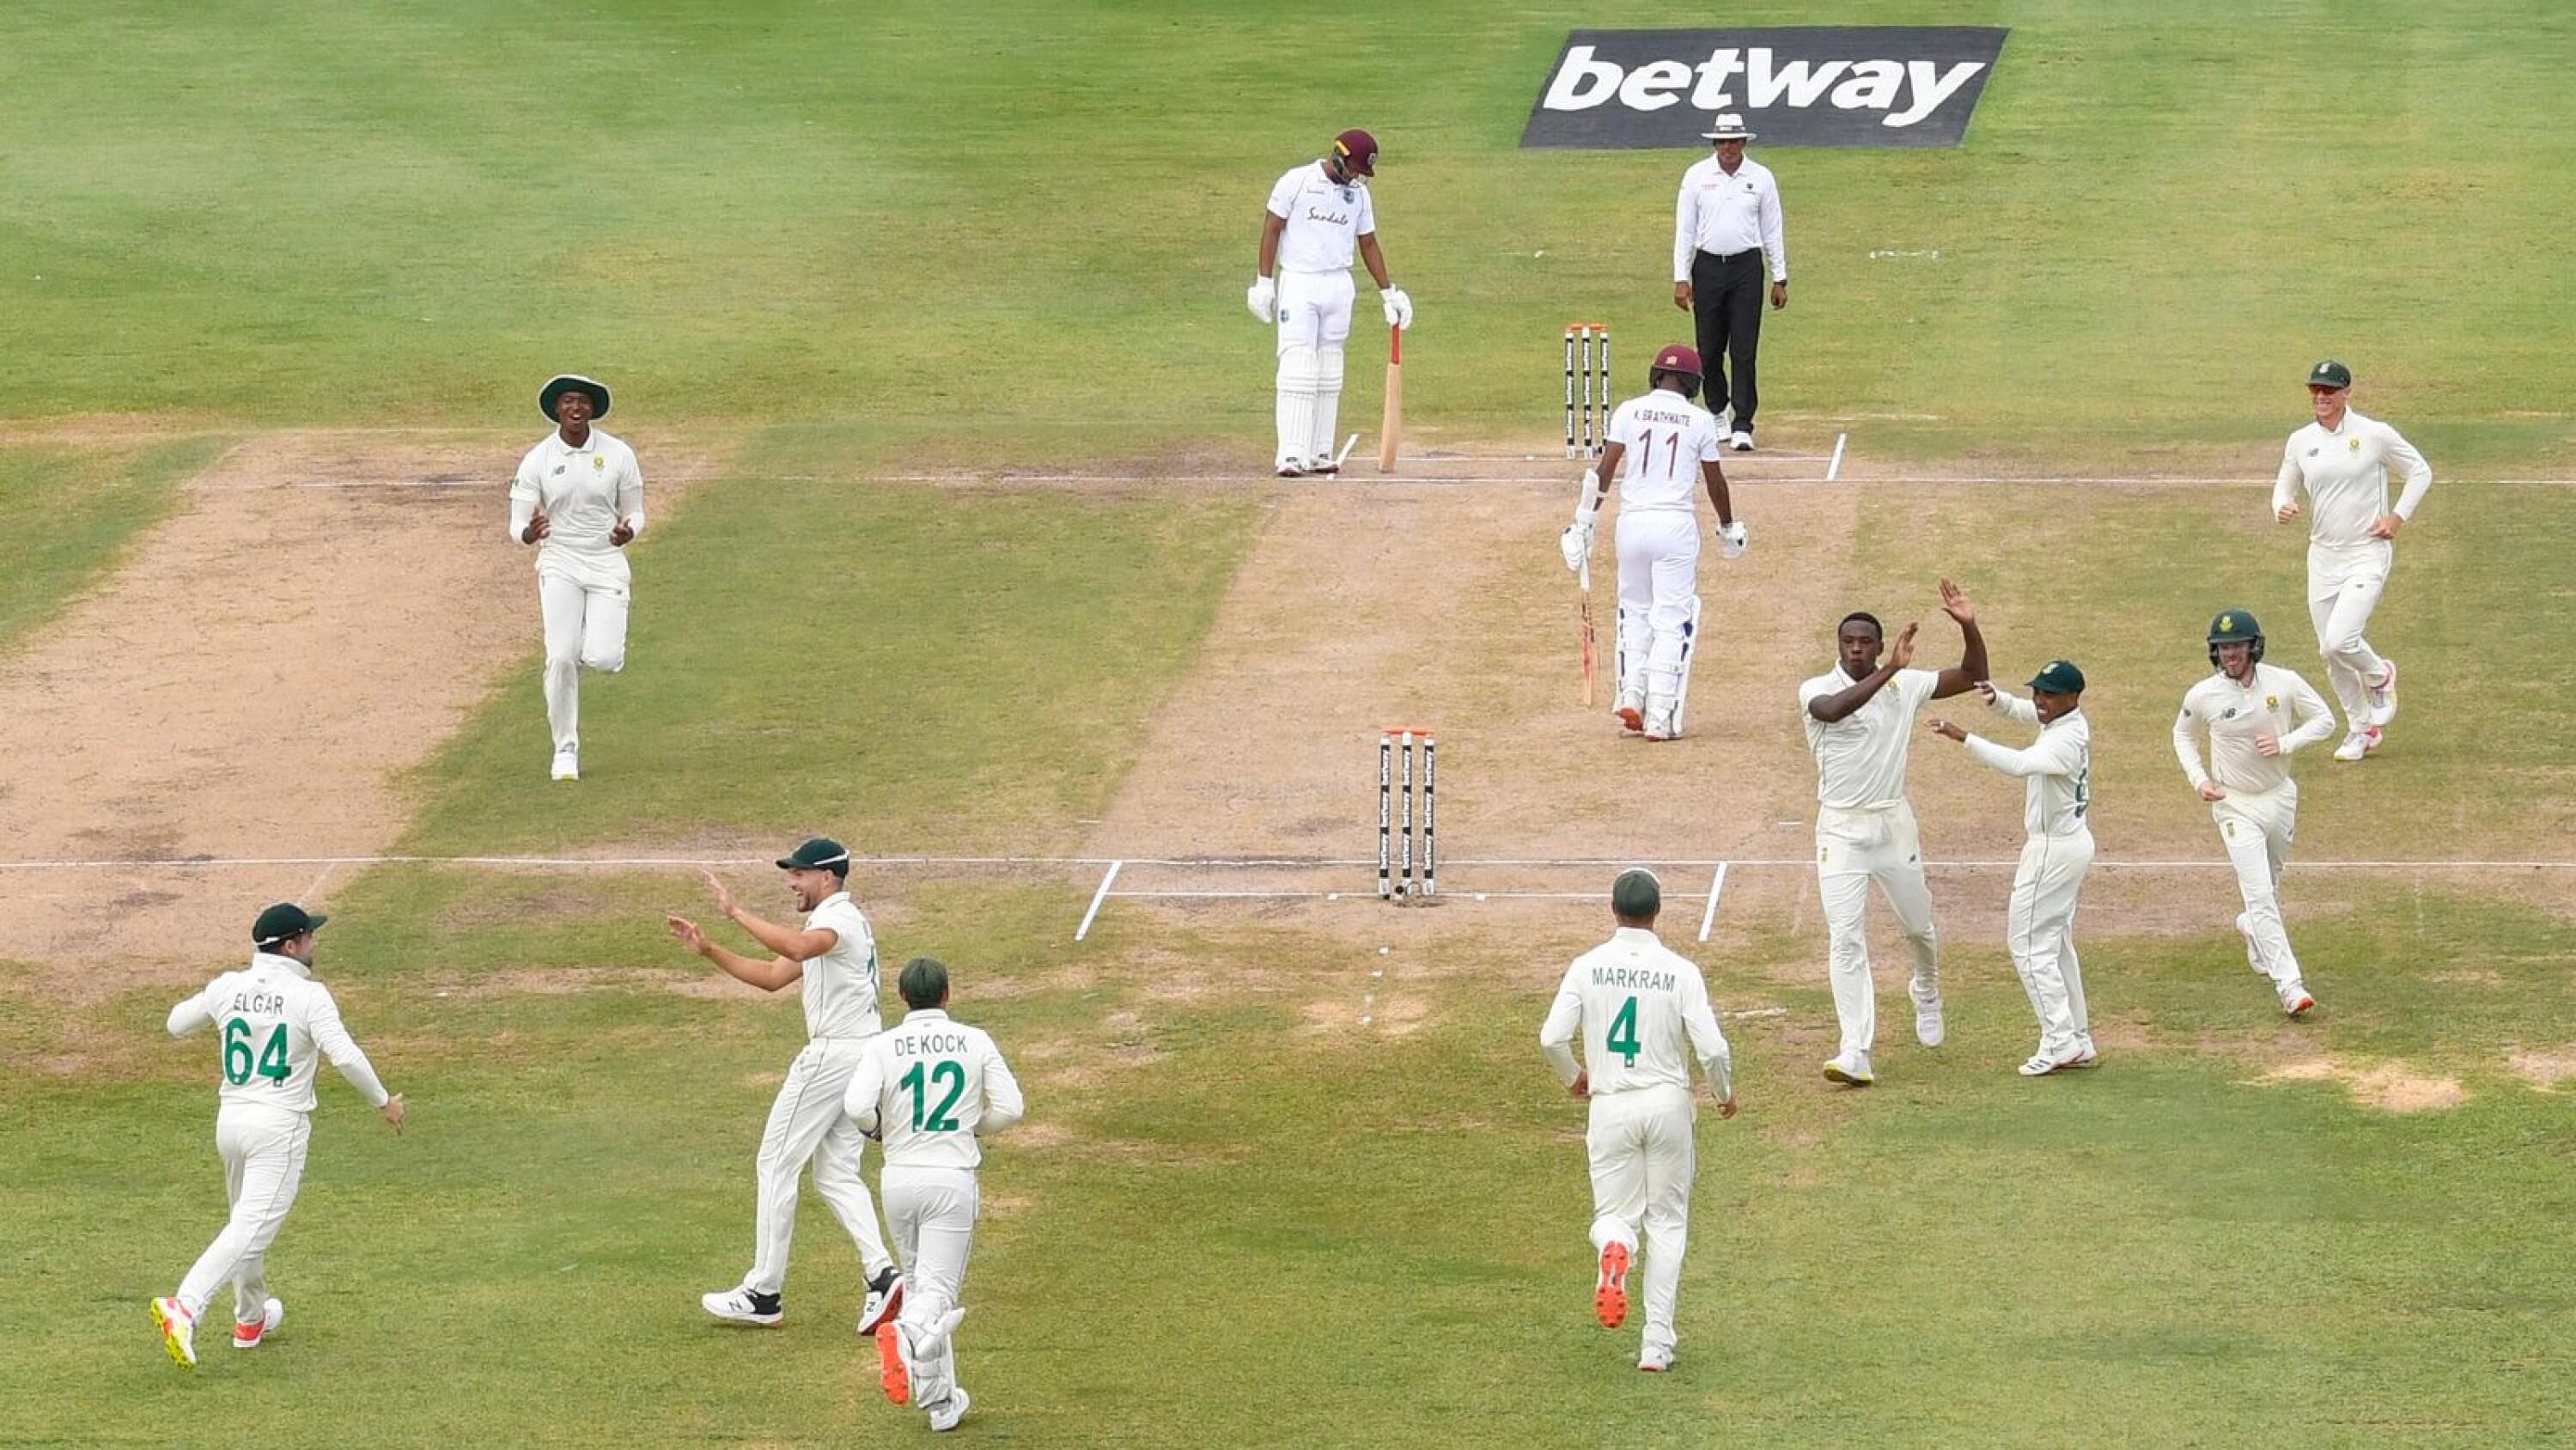 The Proteas celebrate the dismissal of Kraigg Brathwaite of the West Indies on day four of the second Test at Darren Sammy Cricket Ground, Gros Islet, Saint Lucia, on Monday